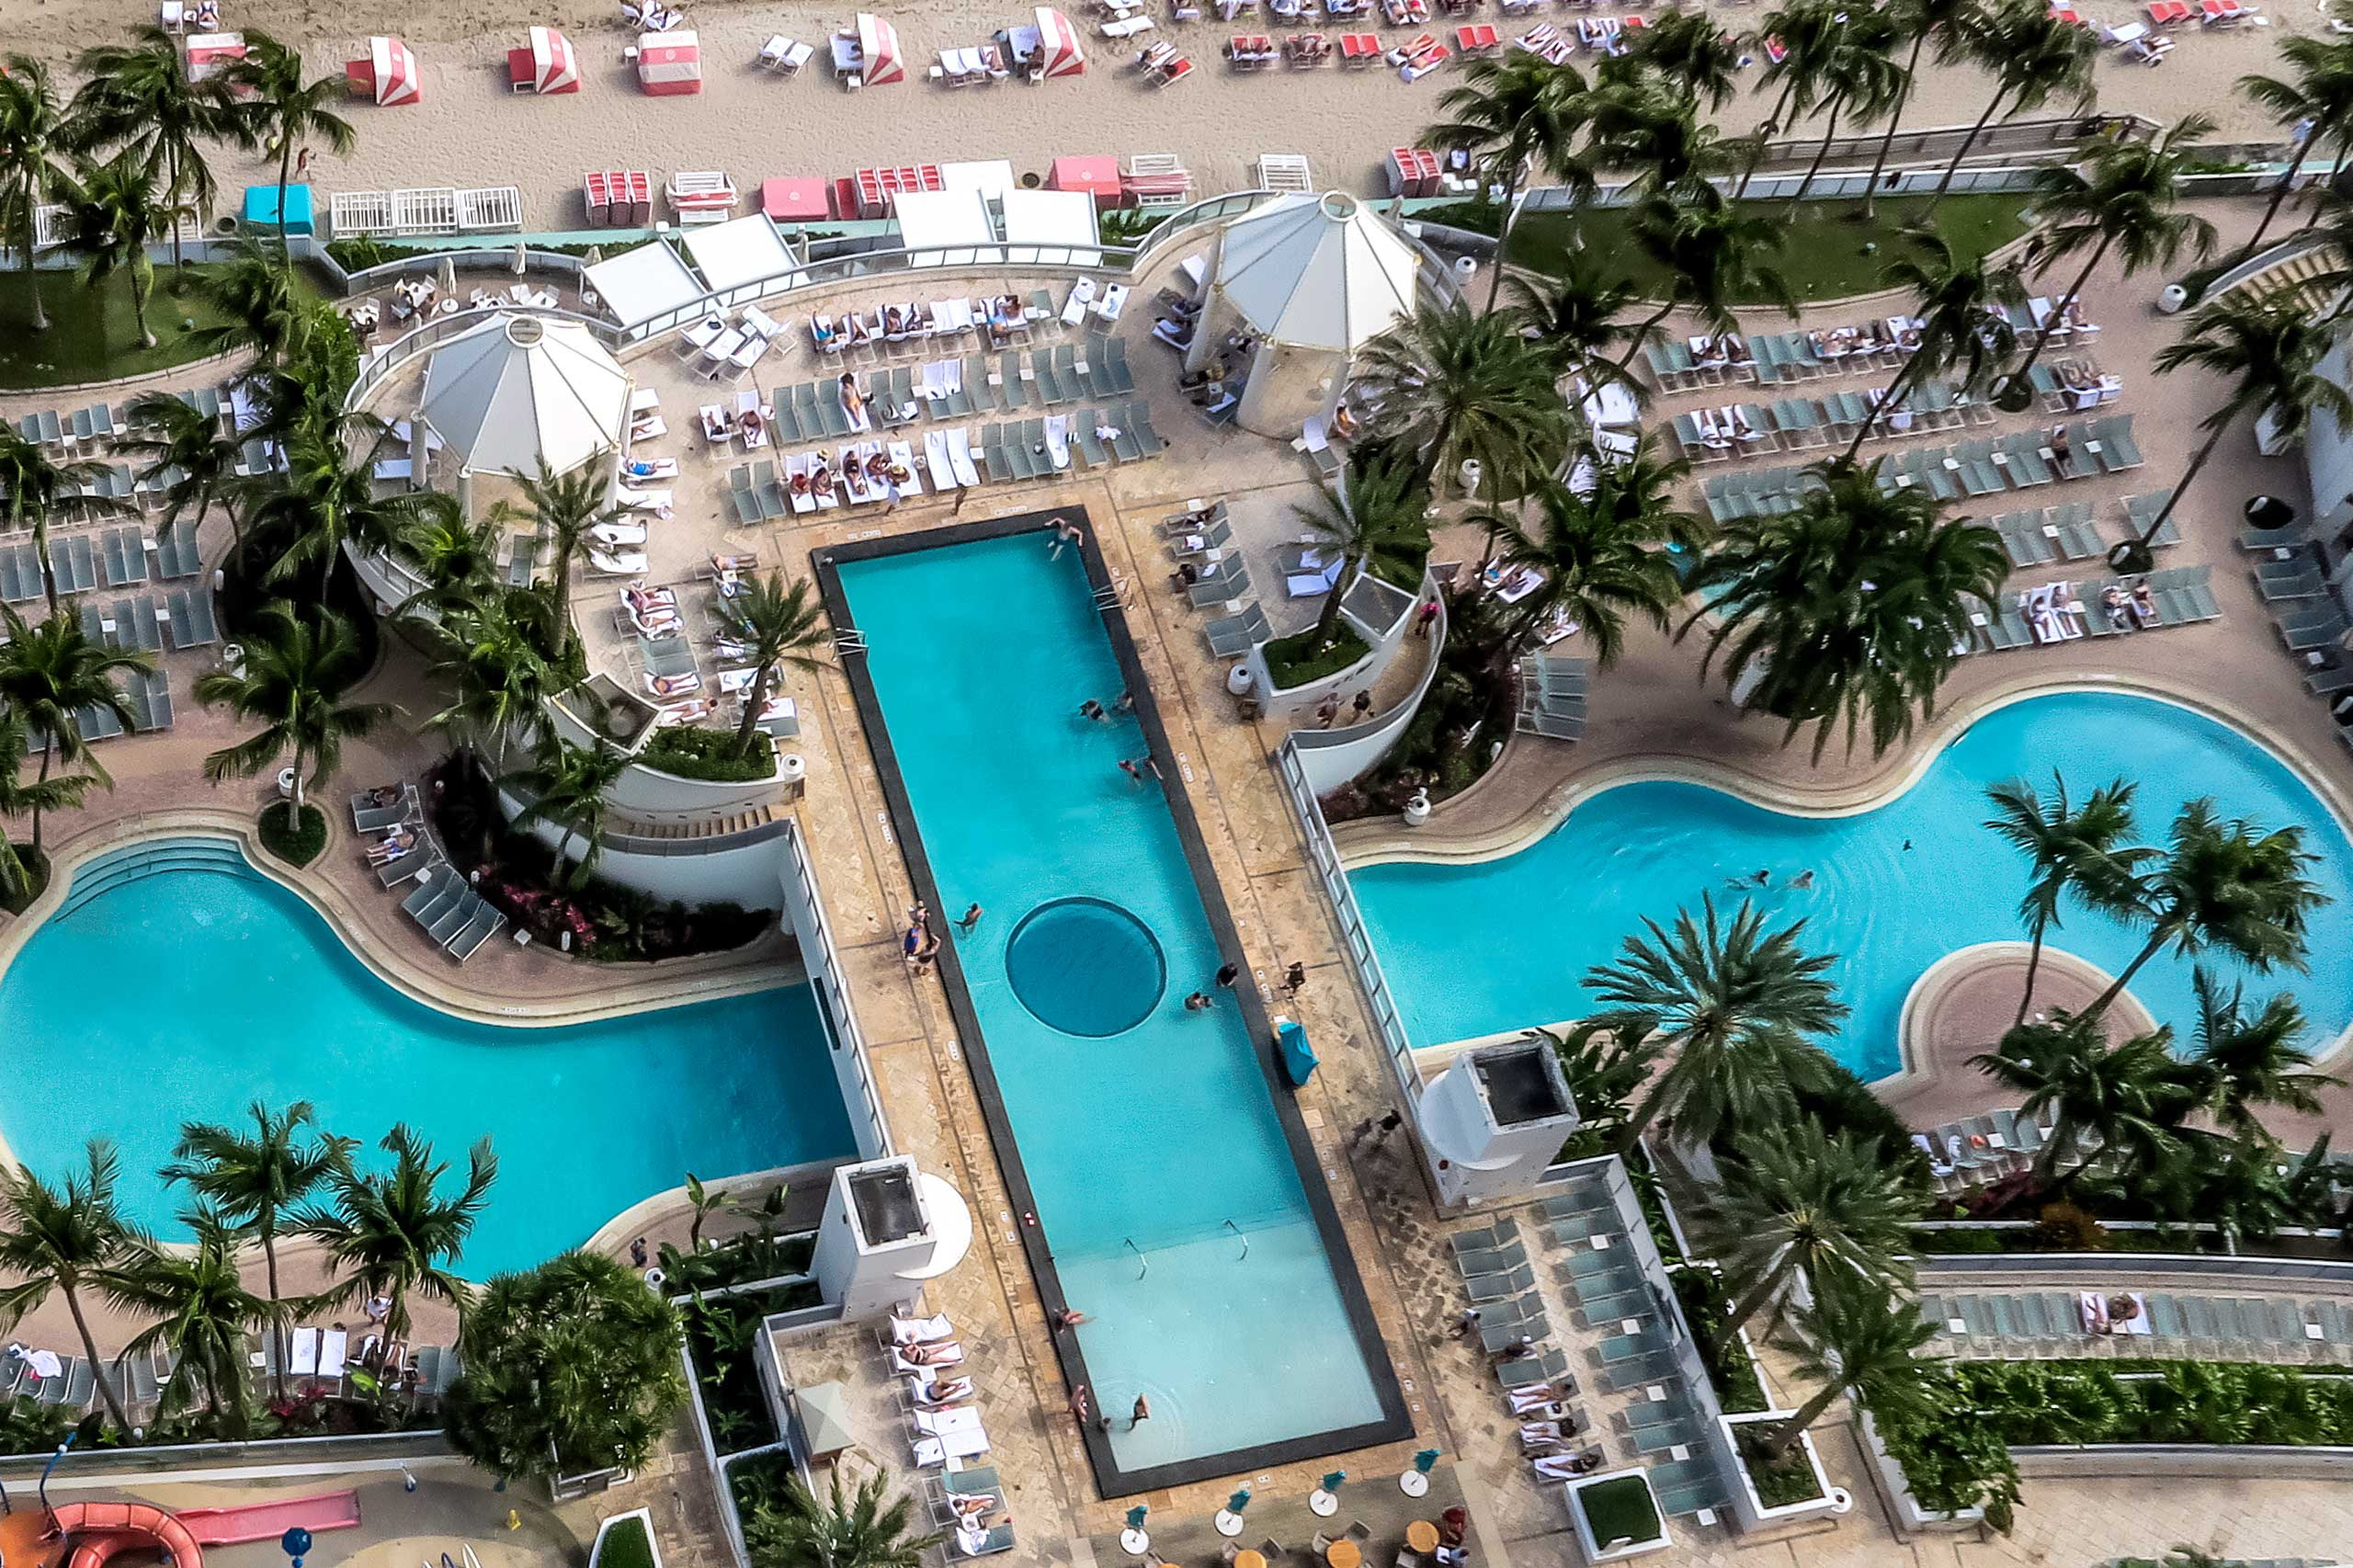 Diplomat Beach Resort pools